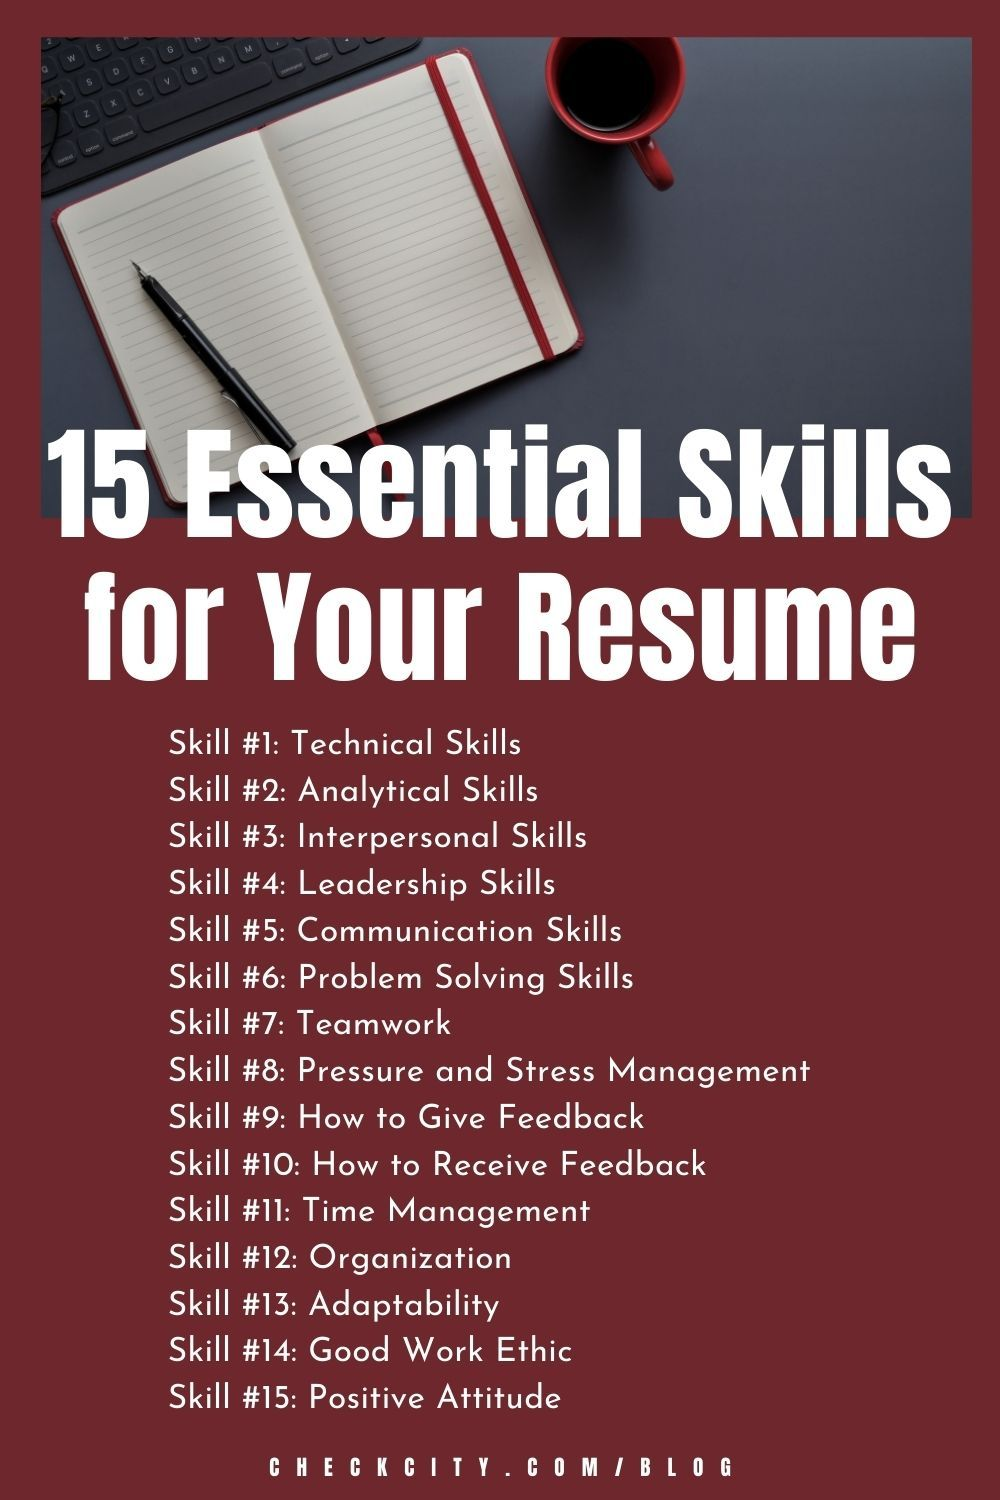 15 Essential Skills For Your Resume Stress Management Skills Resume Skills Teamwork Skills